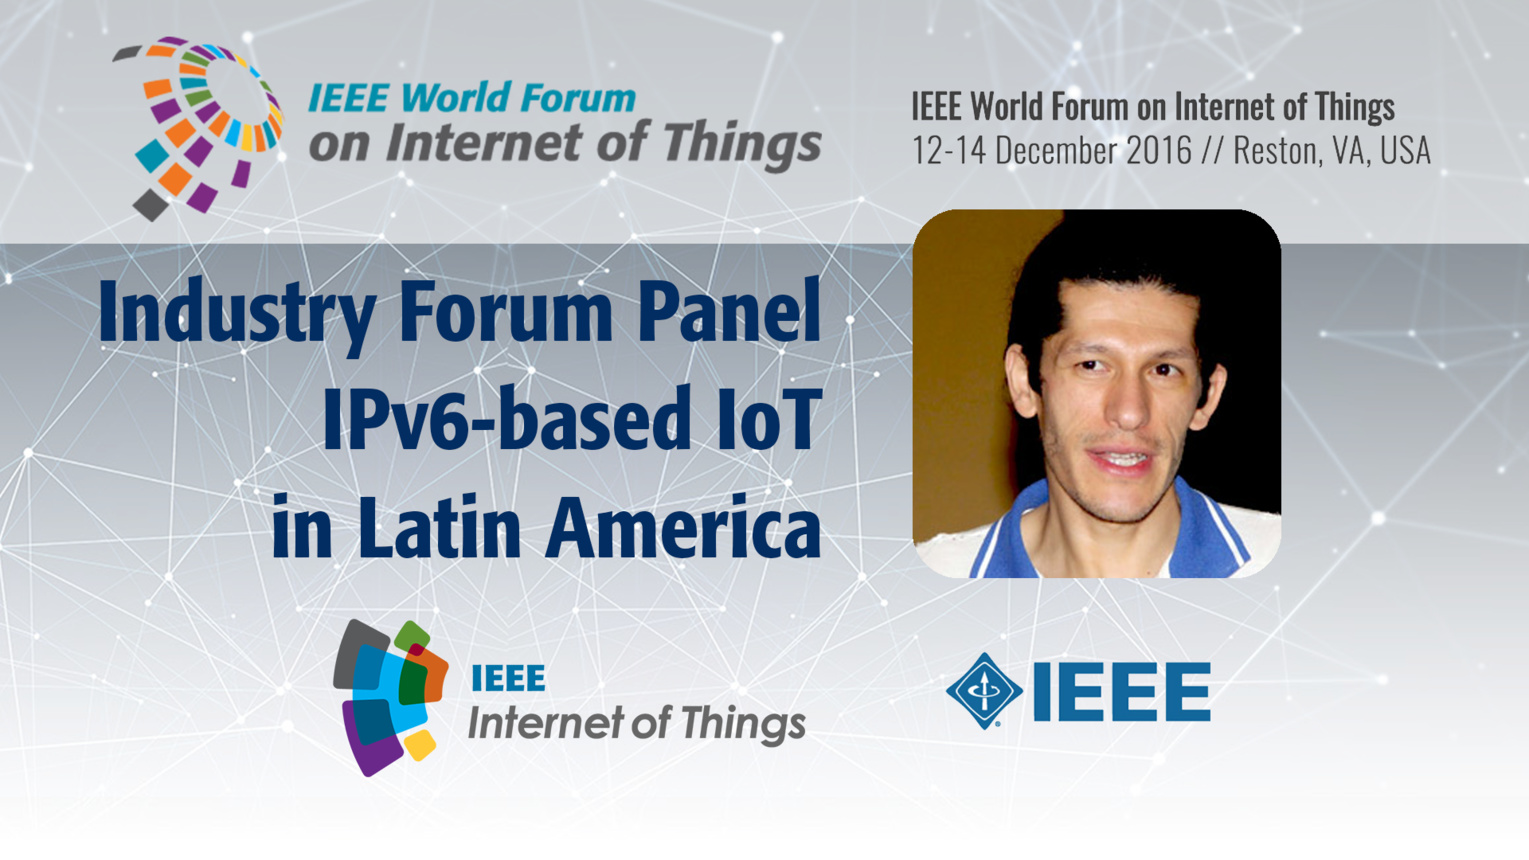 Azael Fernandez Alcantara: The Latin American Perspective - IPv6 Industry Forum Panel: WF IoT 2016